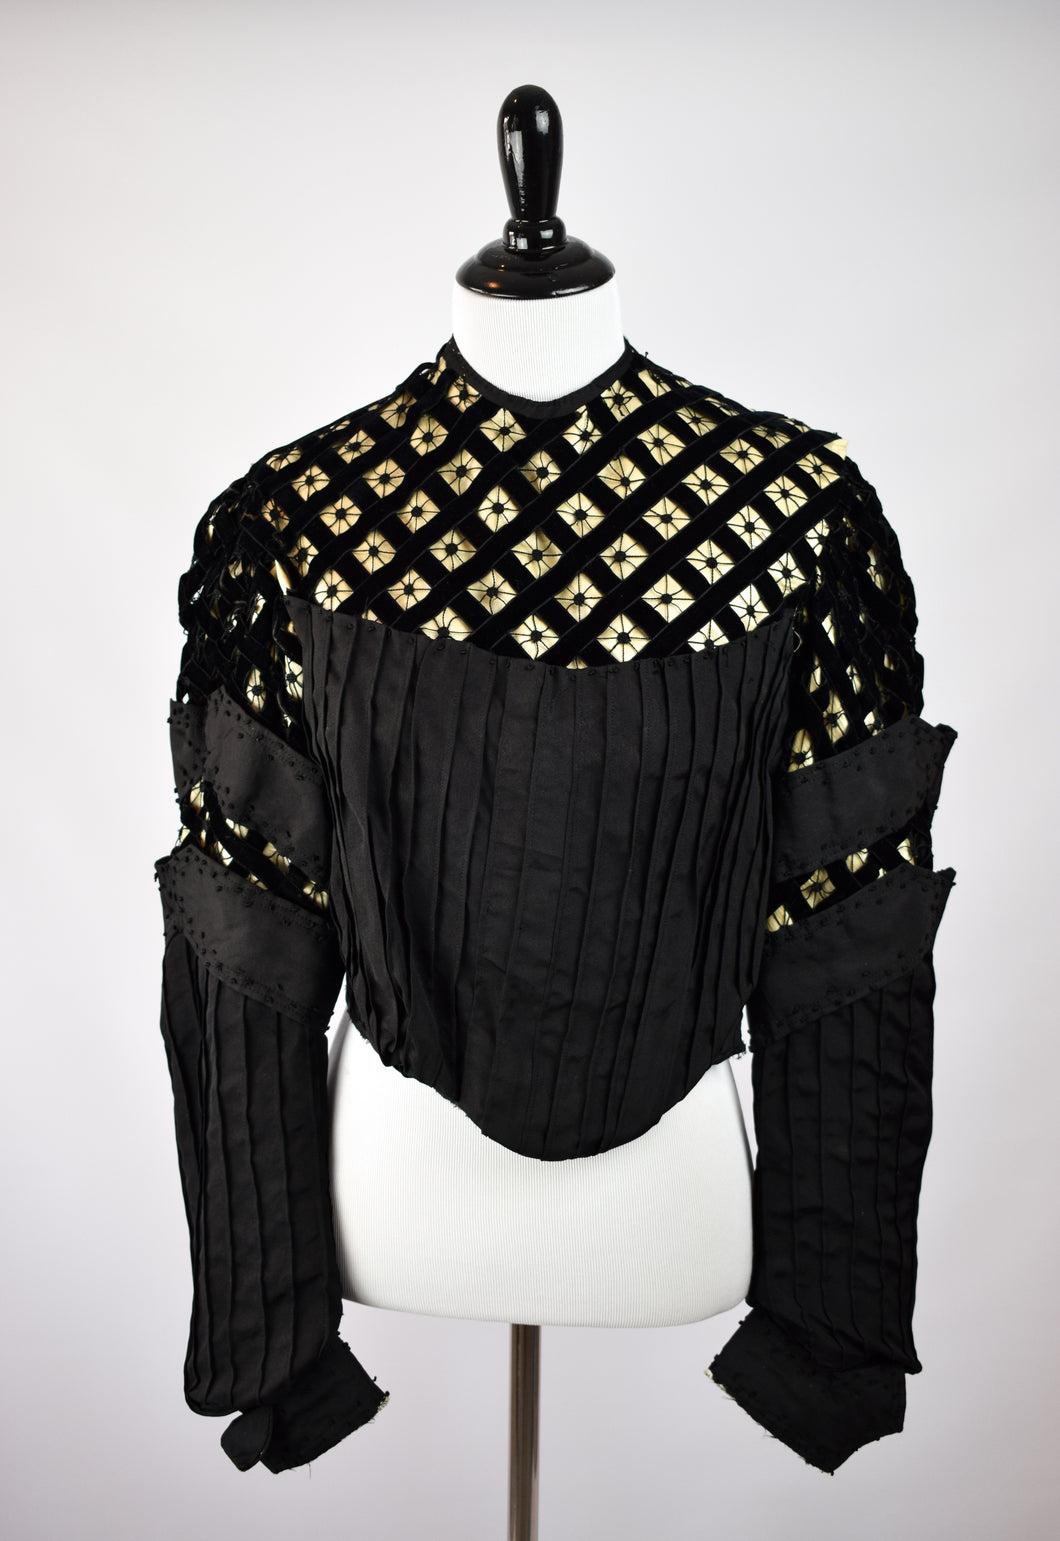 1880s Spiderweb Lattice Bodice Jacket